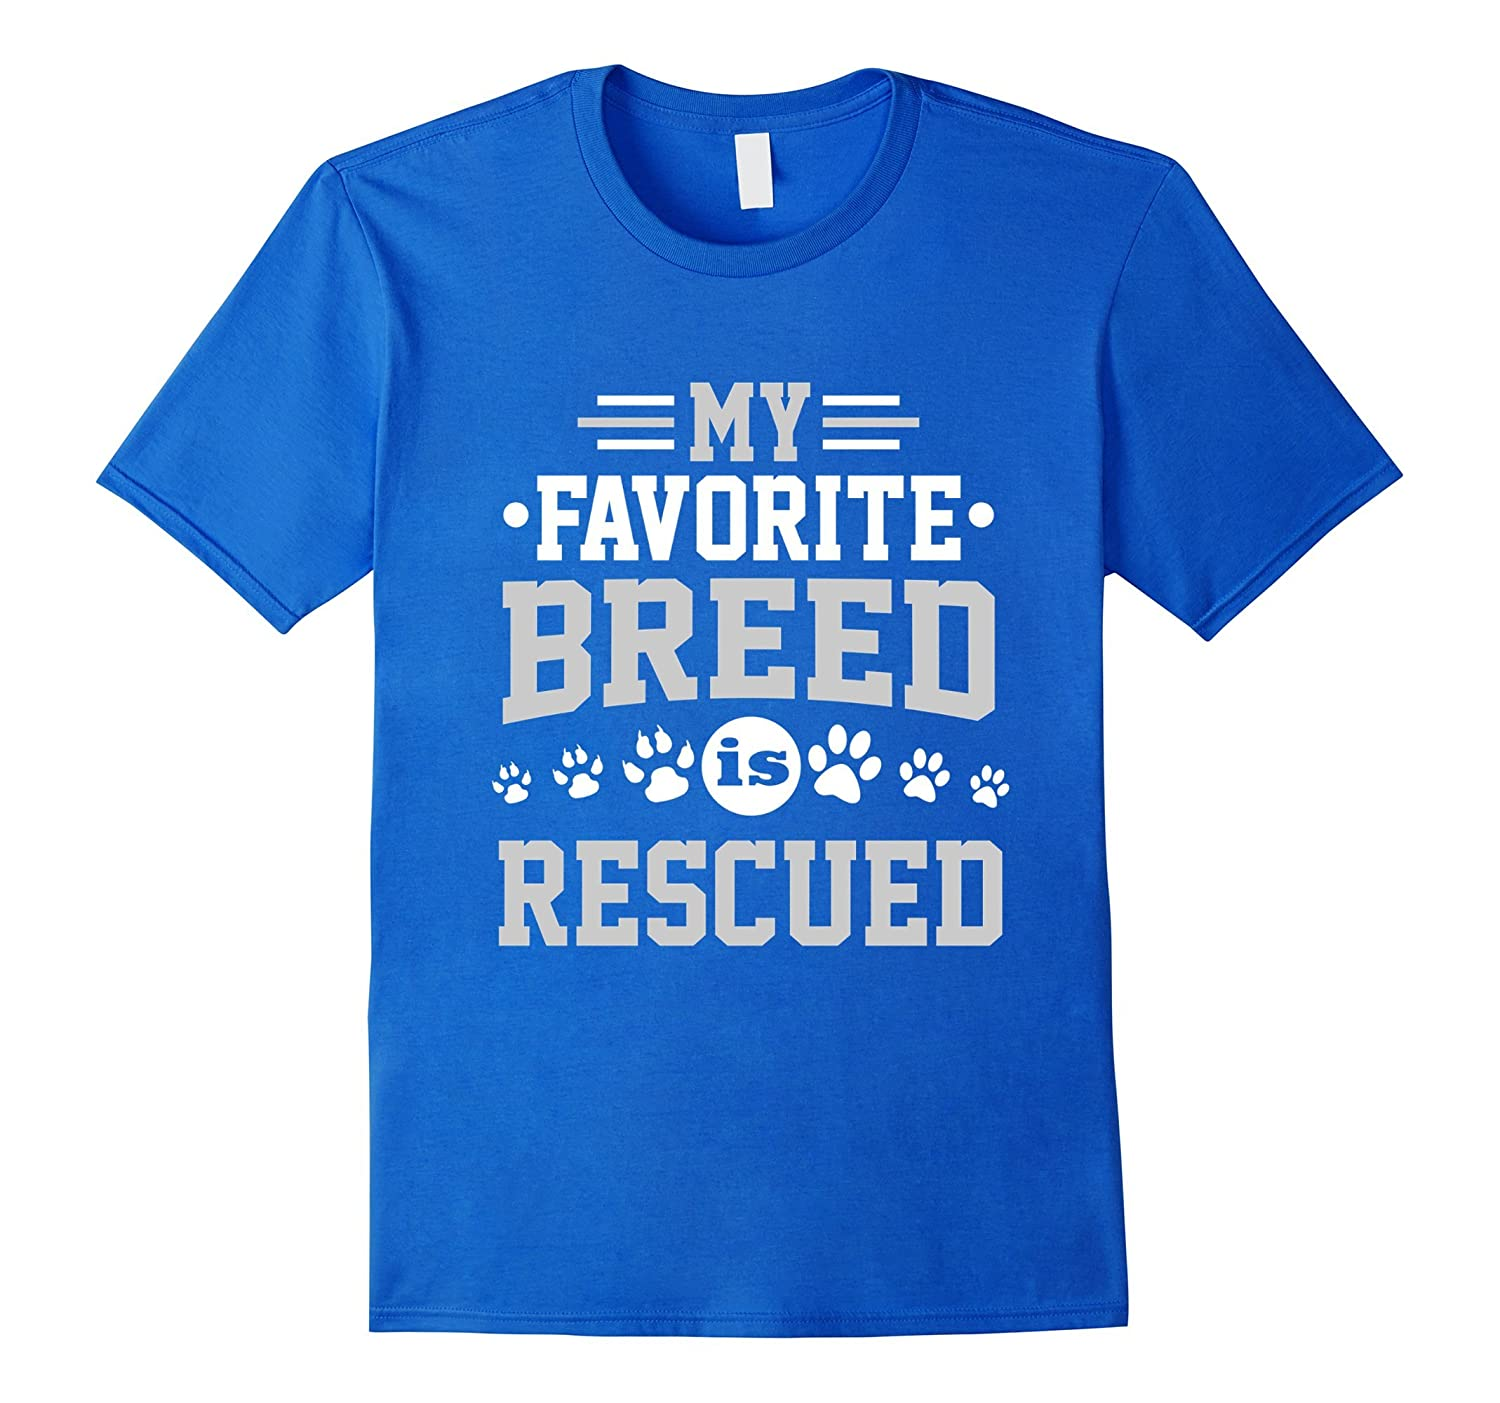 My Favorite Breed is Rescued Dog and Cat Adoption T-Shirt-AZP